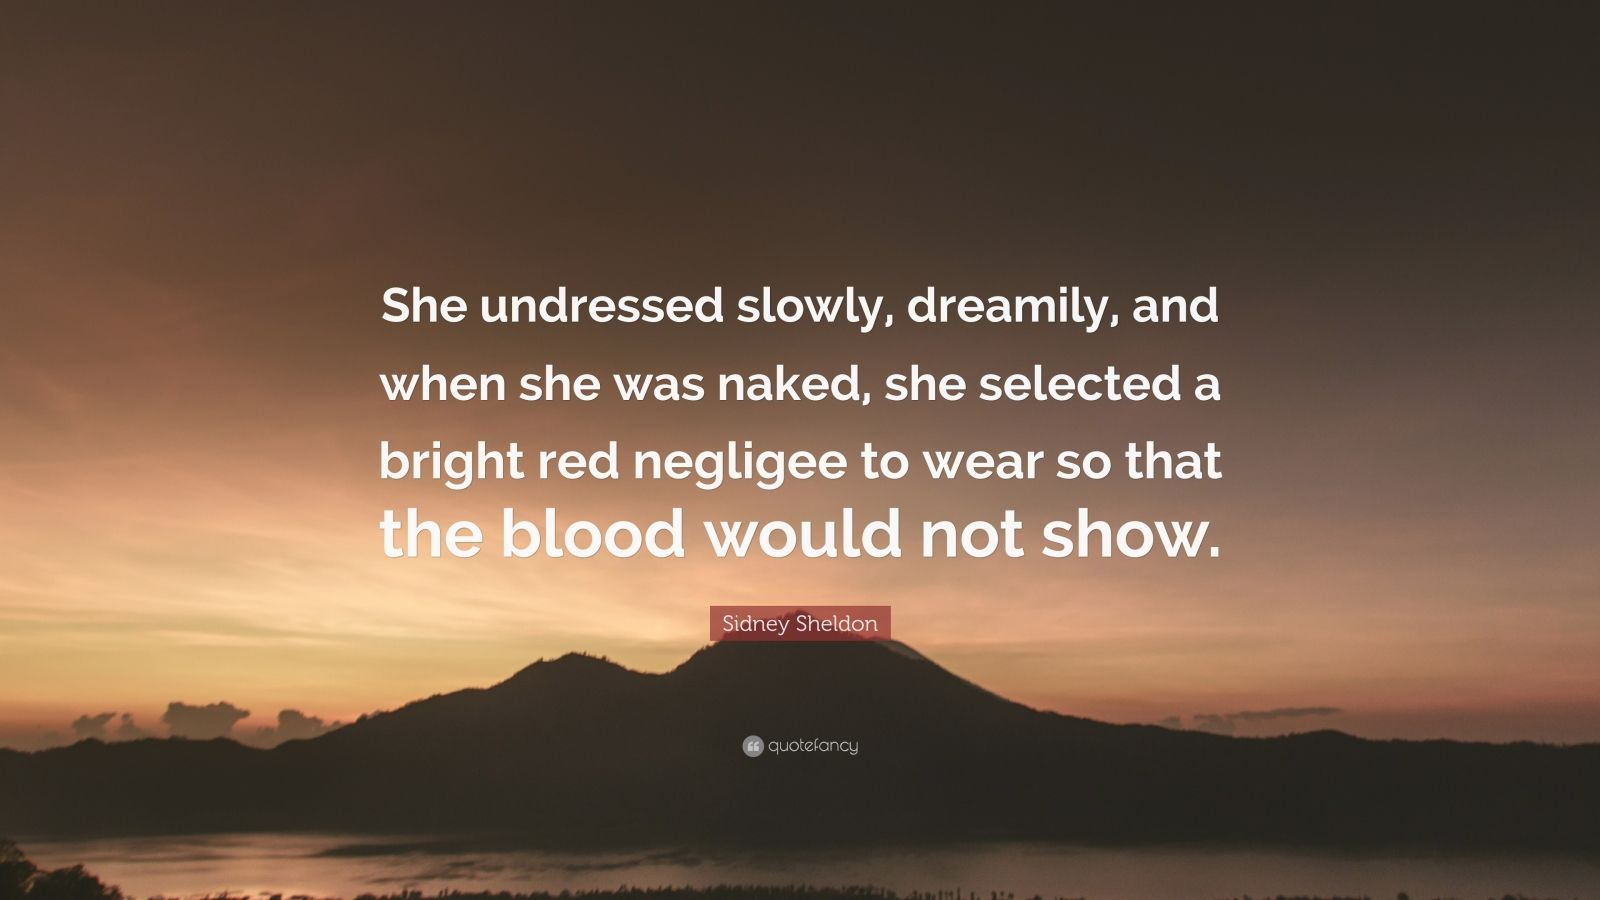 """Sidney Sheldon Quote: """"She undressed slowly, dreamily, and when she was naked, she selected a bright red negligee to wear so that the blood would not show."""""""